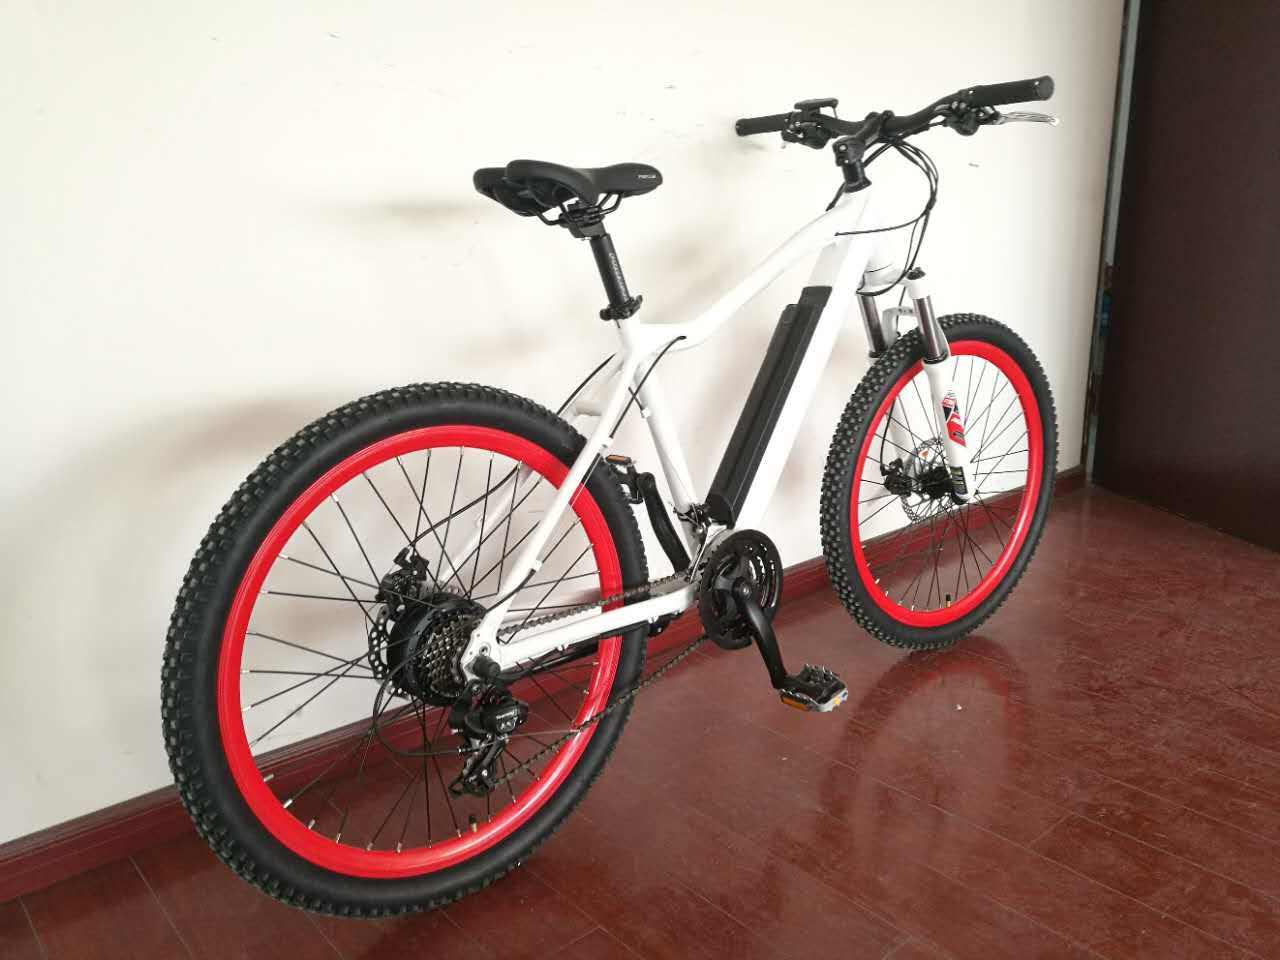 Hot Sale Torque Sensor Electric Bicycle Bike